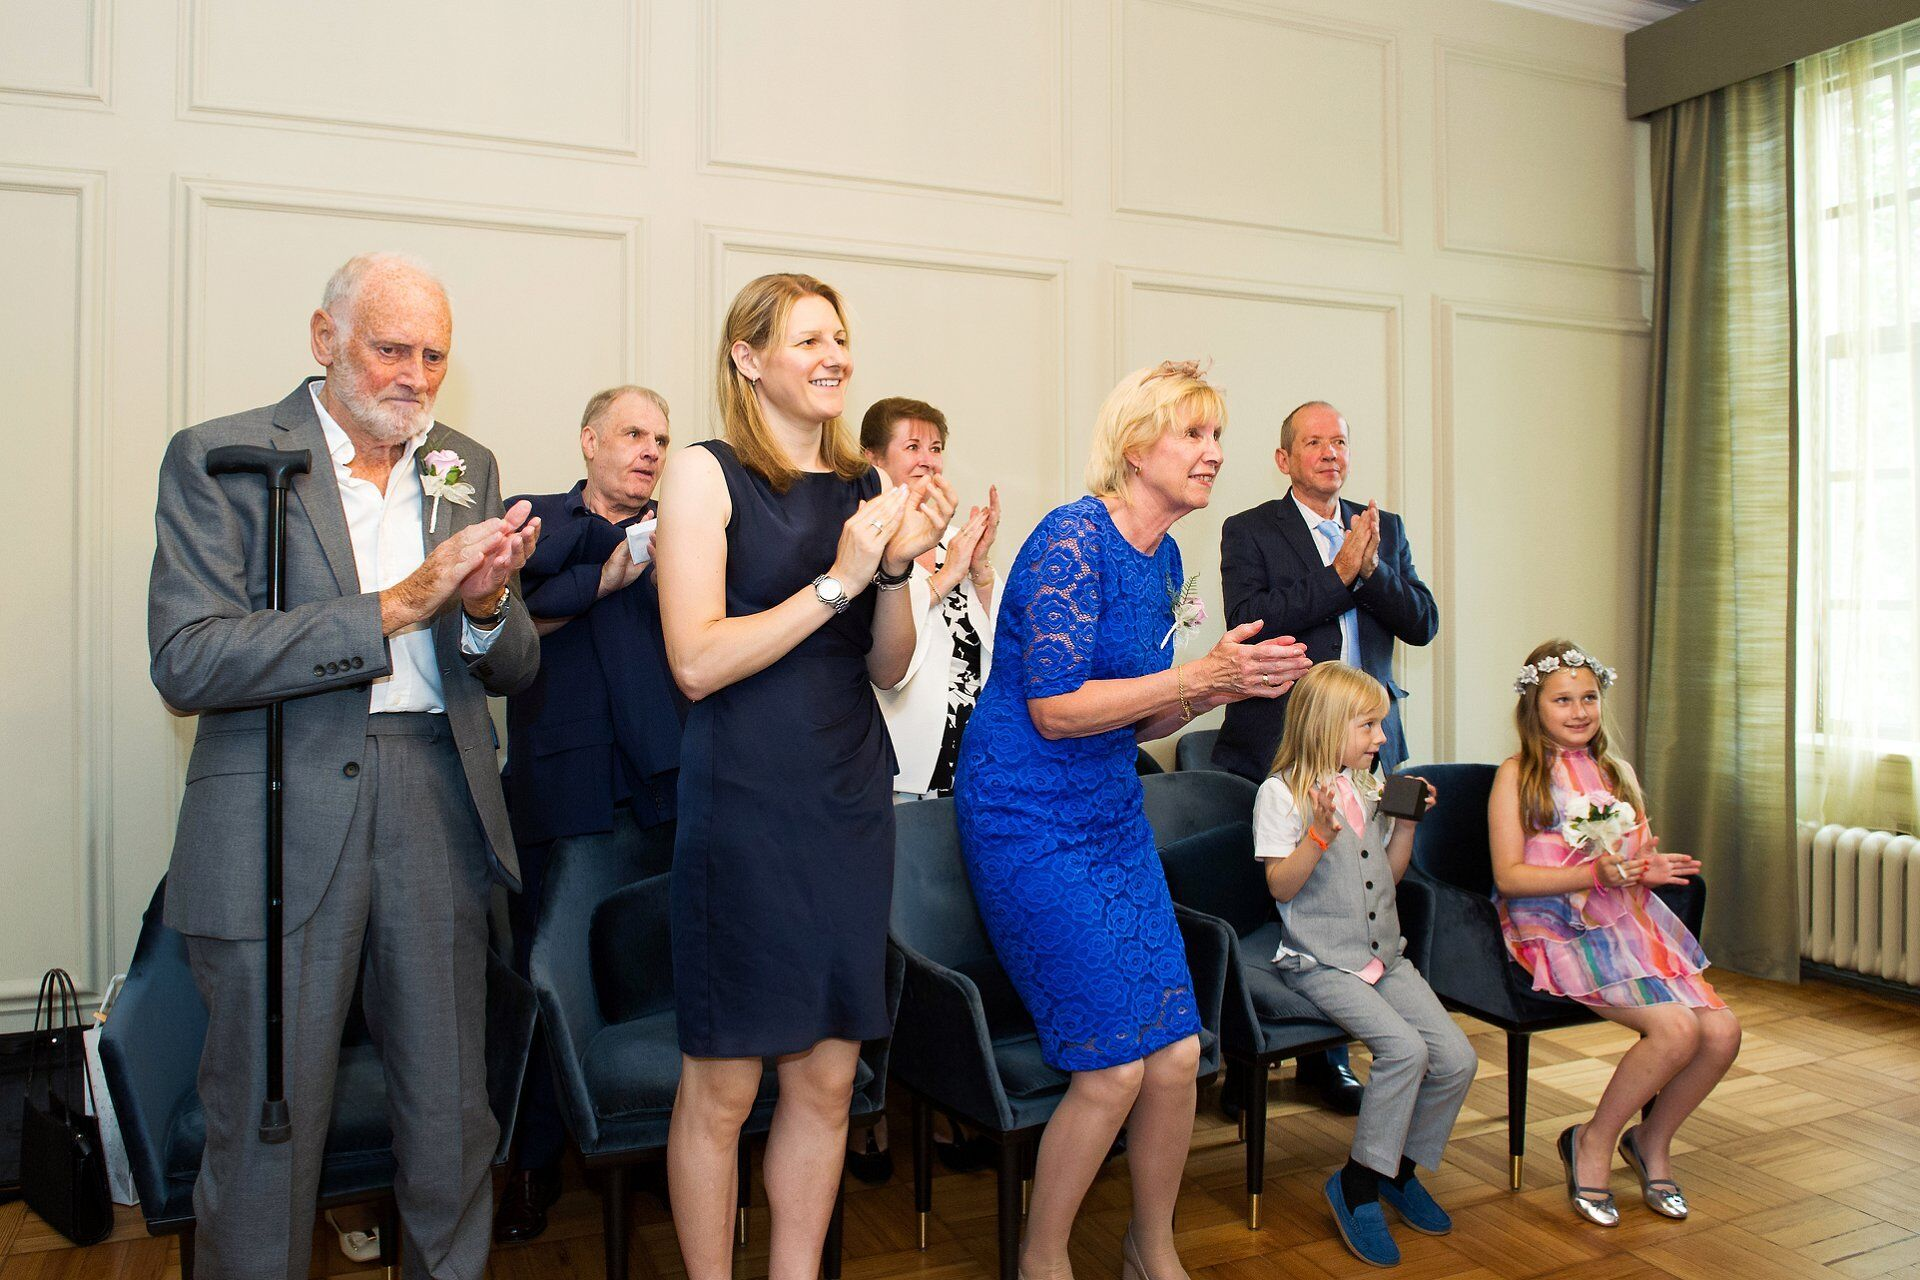 guests in the pimlico room at old marylebone town hall applaud the bride and groom